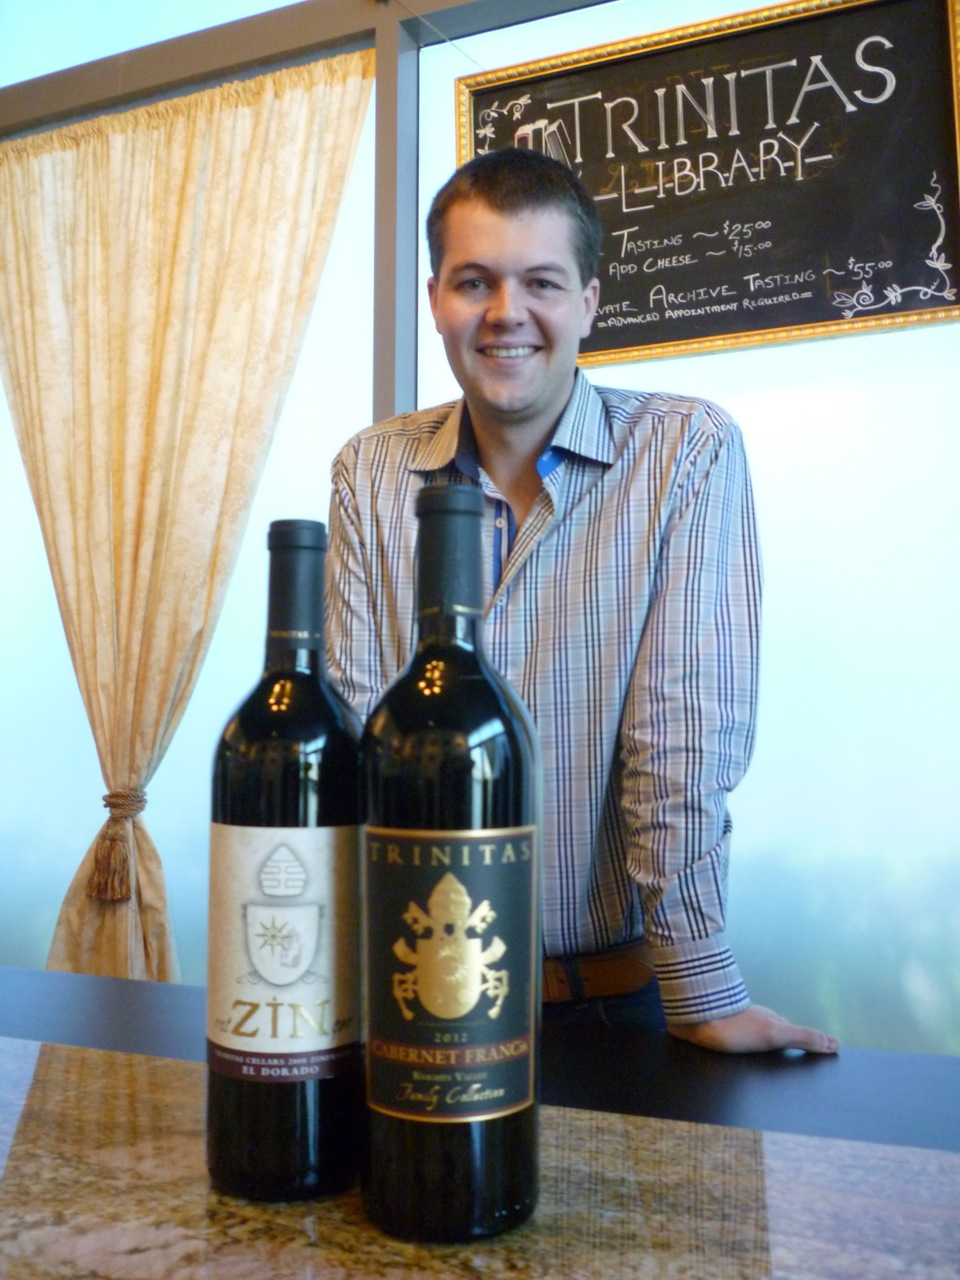 Garrett Busch, CEO of Napa Valley's Trinitas Winery, with two wines that honor popes - RatZINger Zinfandel and Cabernet FRANCis. Religion News Service photo by Kimberly Winston